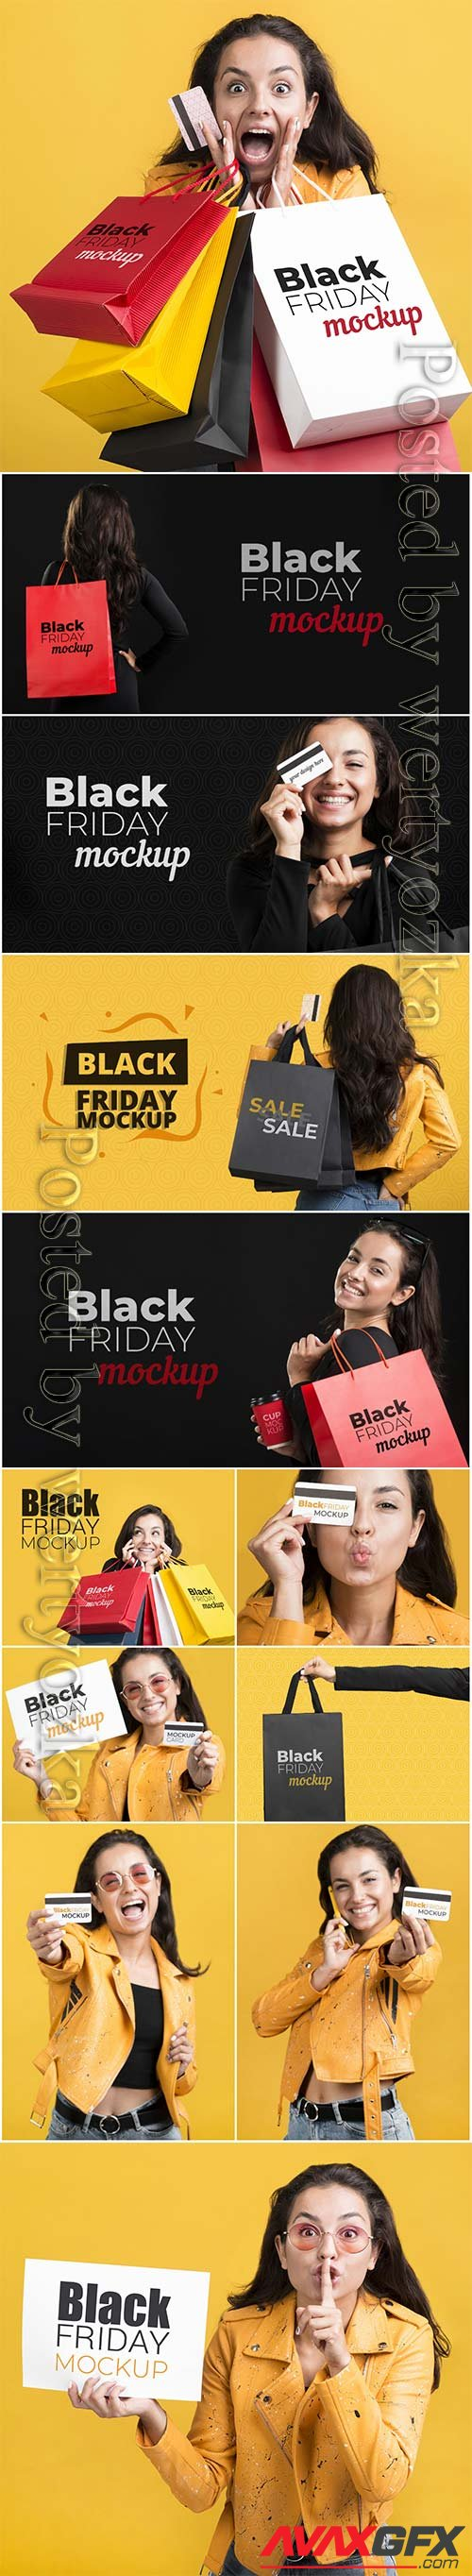 Woman with black friday concept psd template